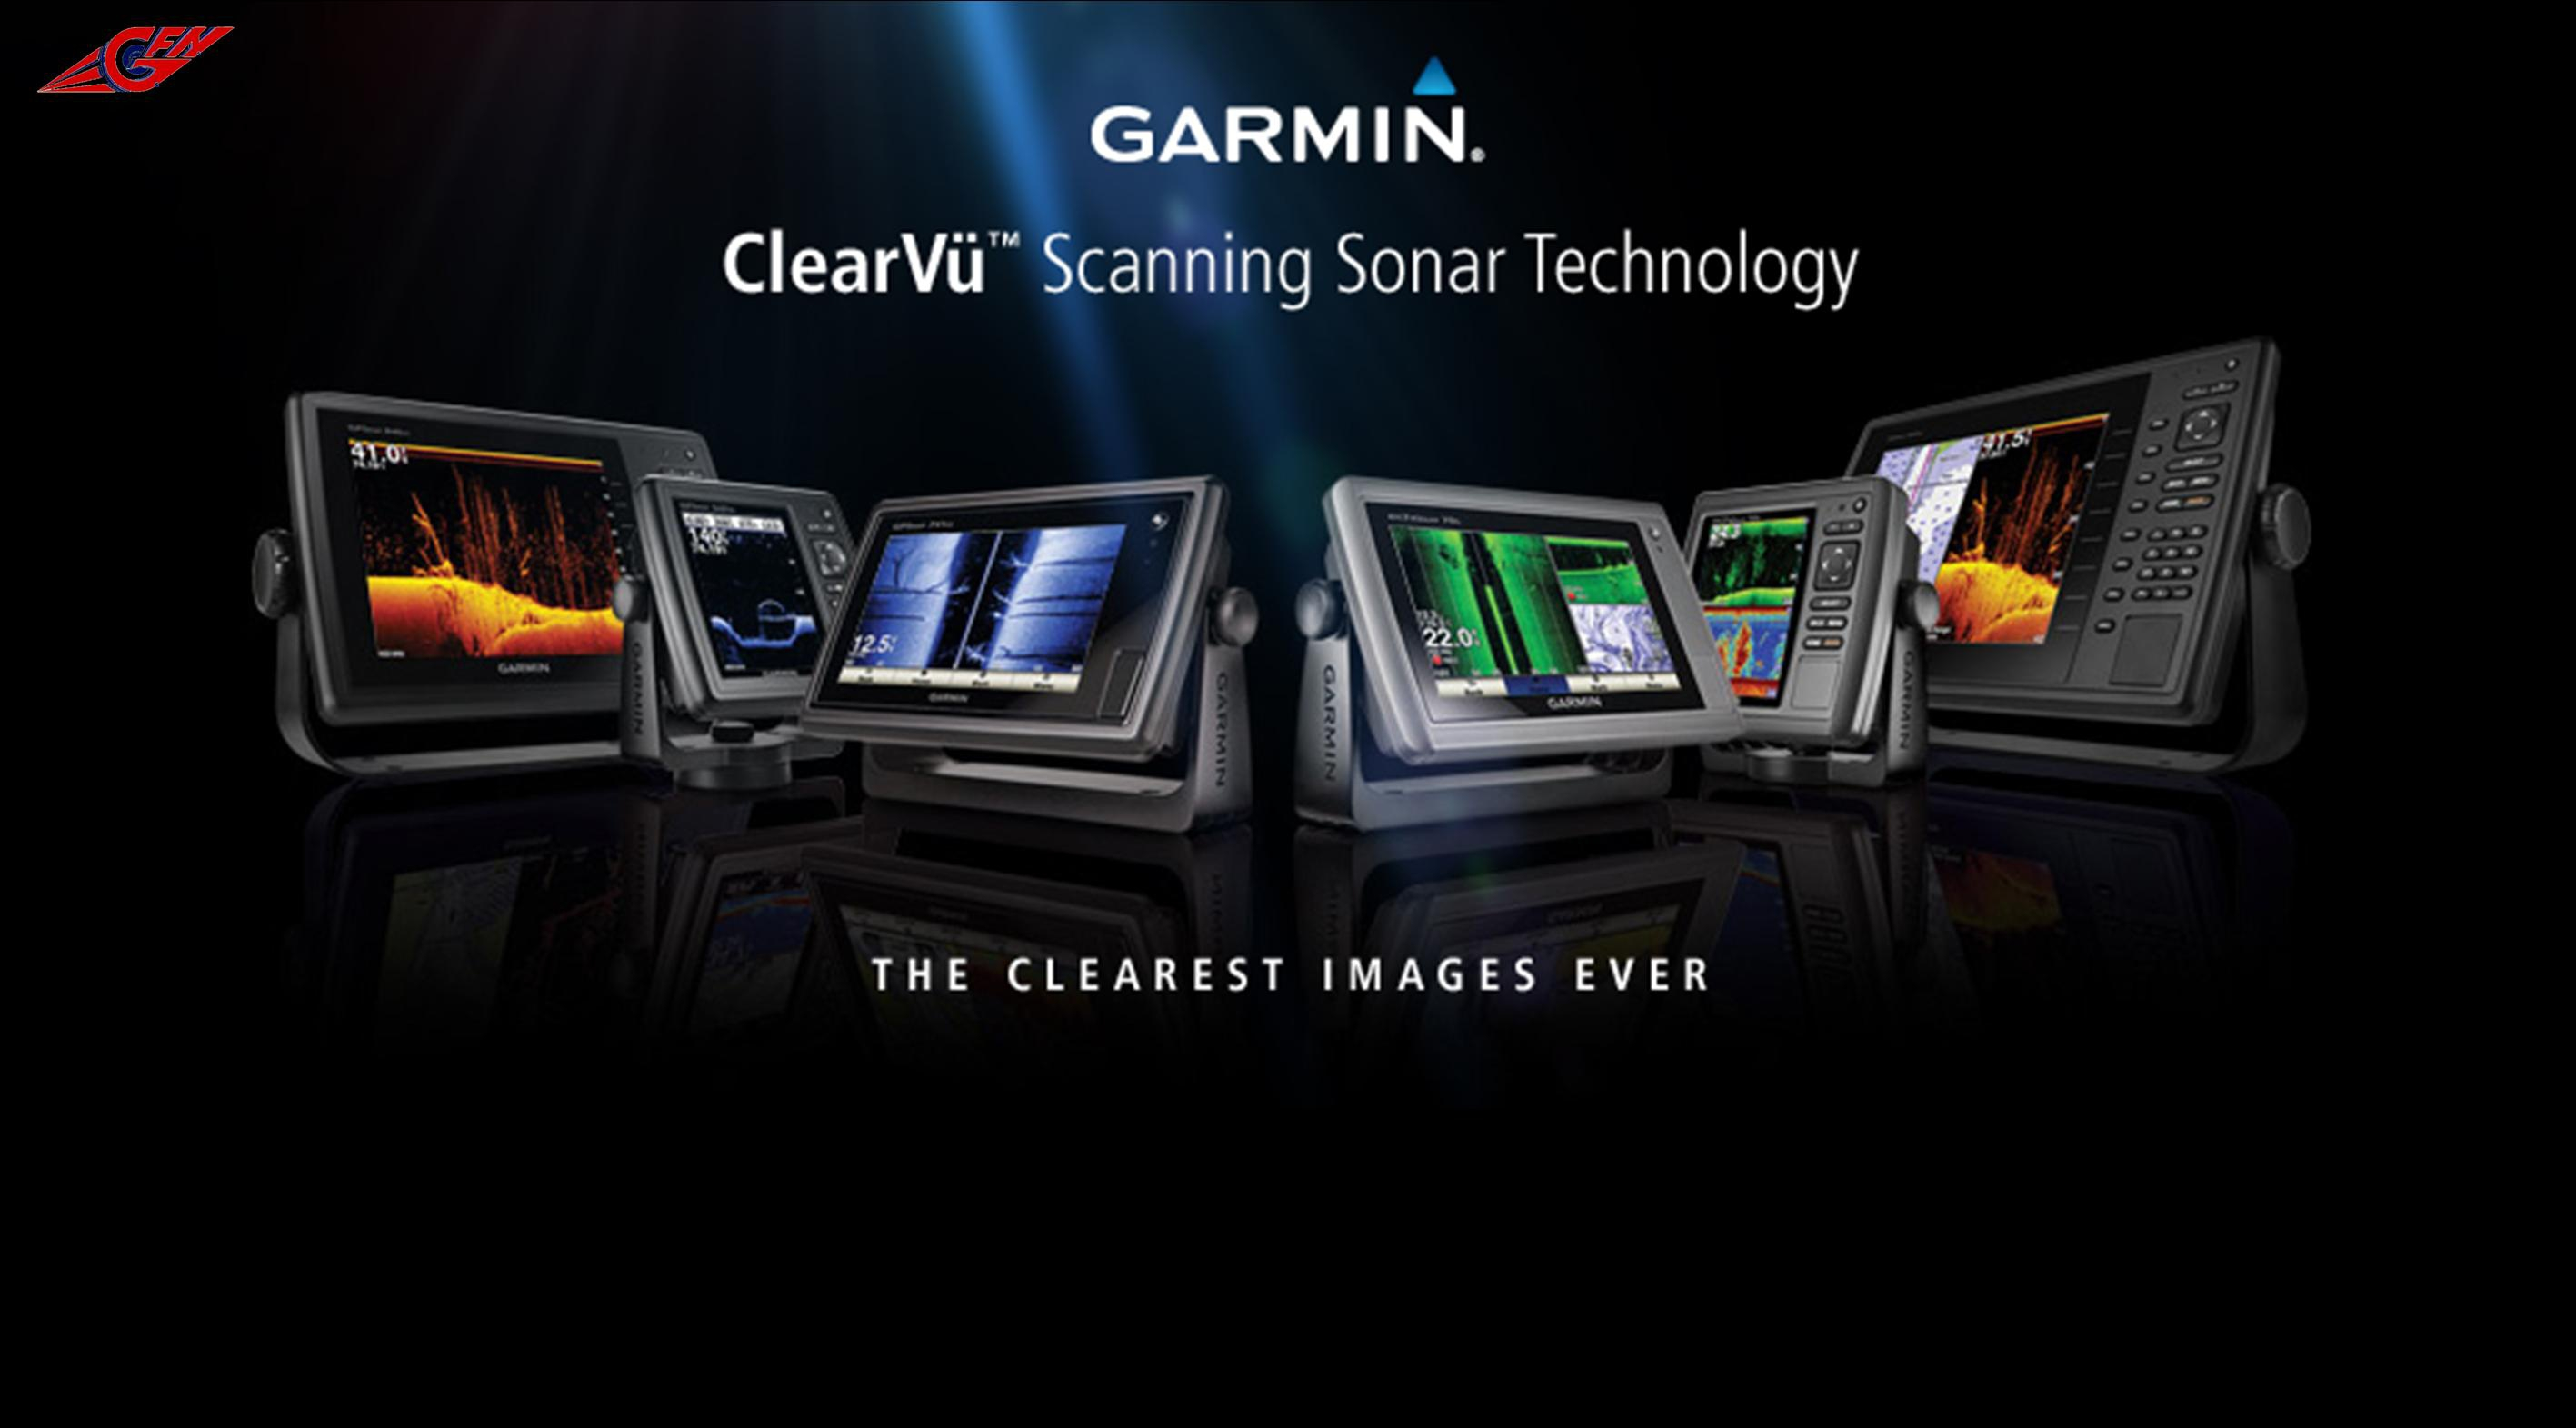 GARMIN ClearVü SCANNING SONAR